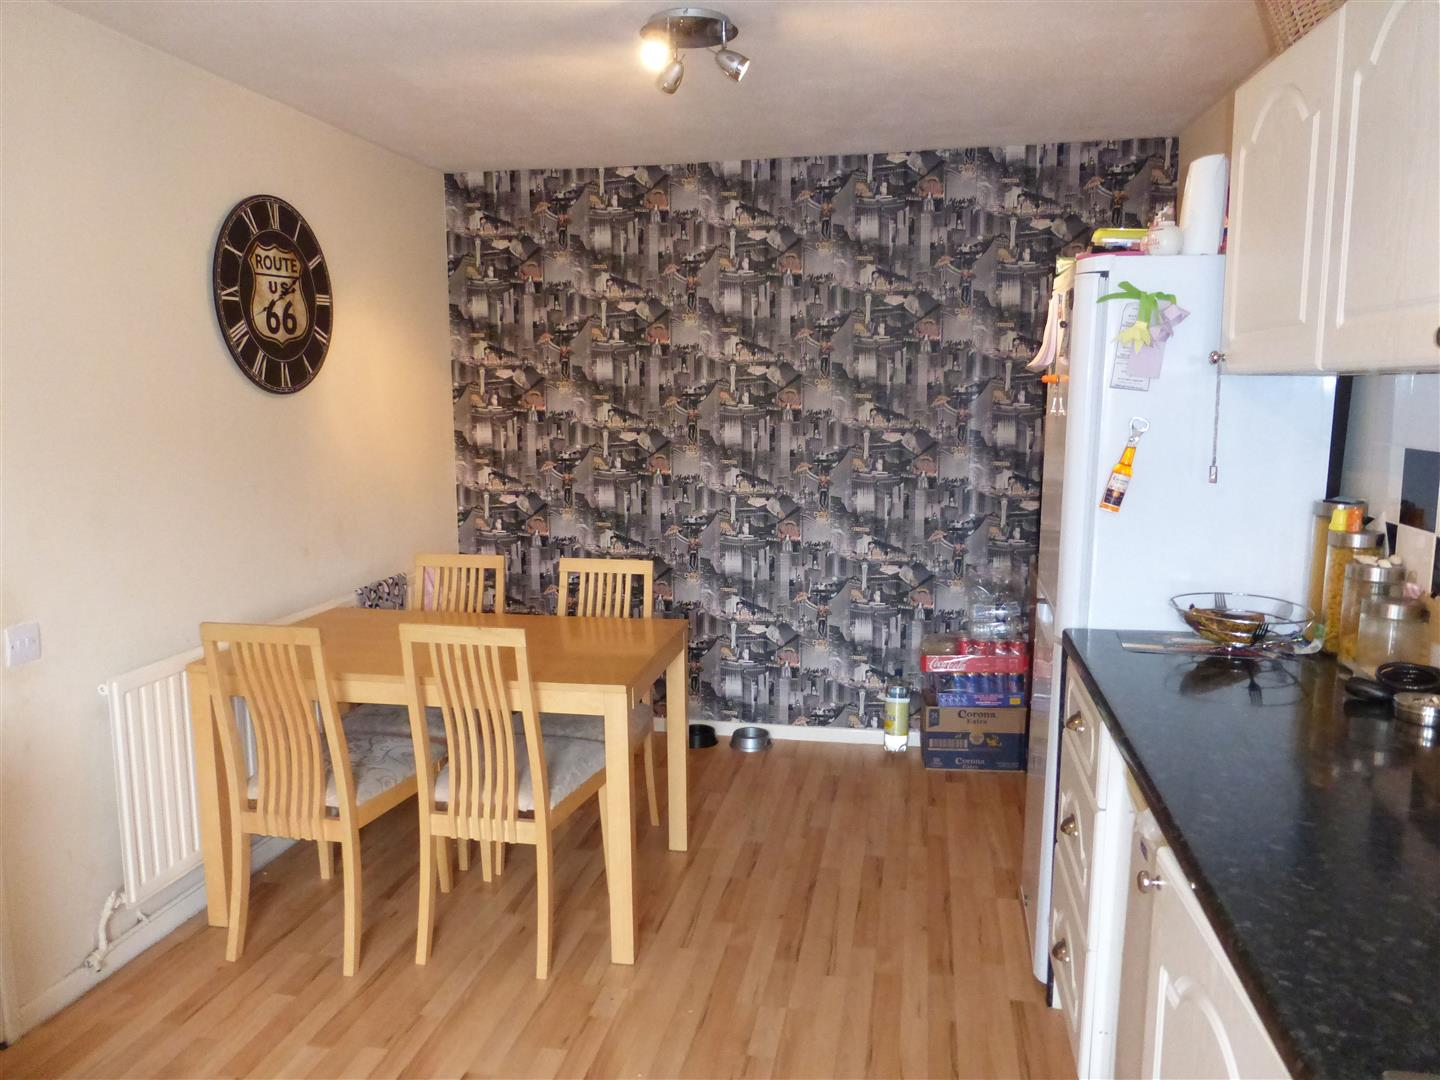 3 Bedroom Property For Sale In Braybrook Orton Goldhay